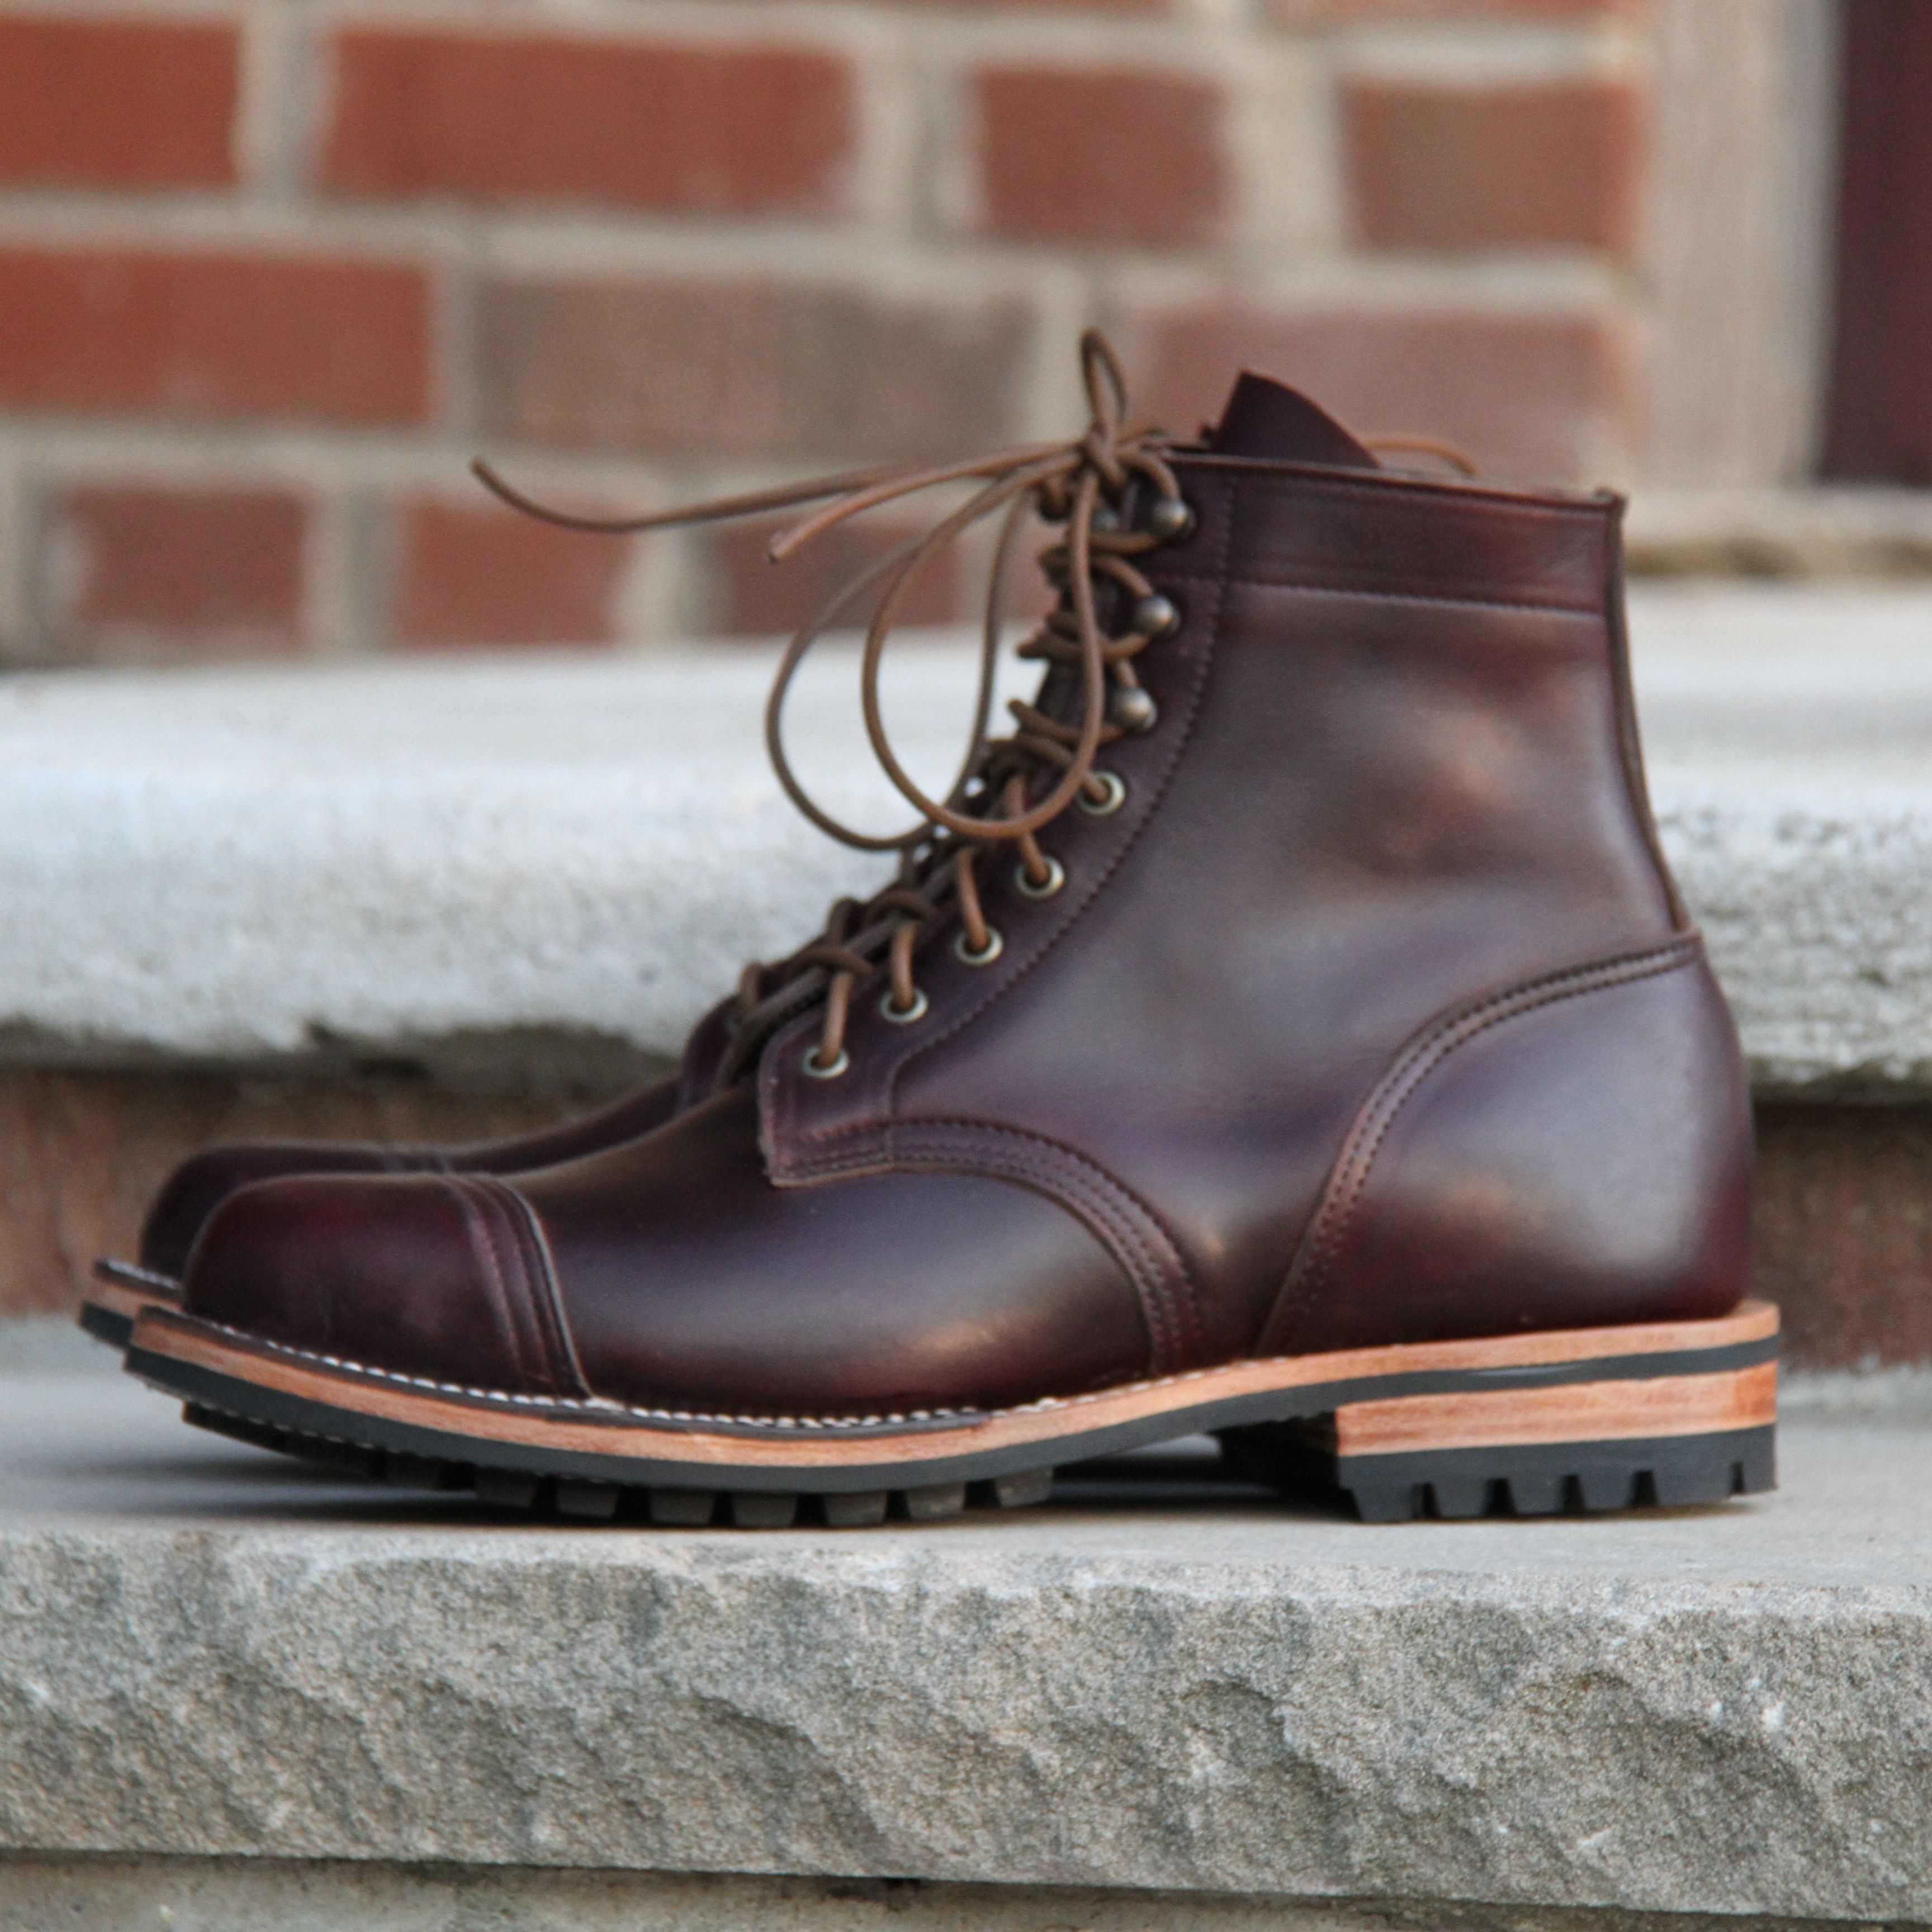 Truman Boot Co Color 8 Chromexcel From Horween Tannery In